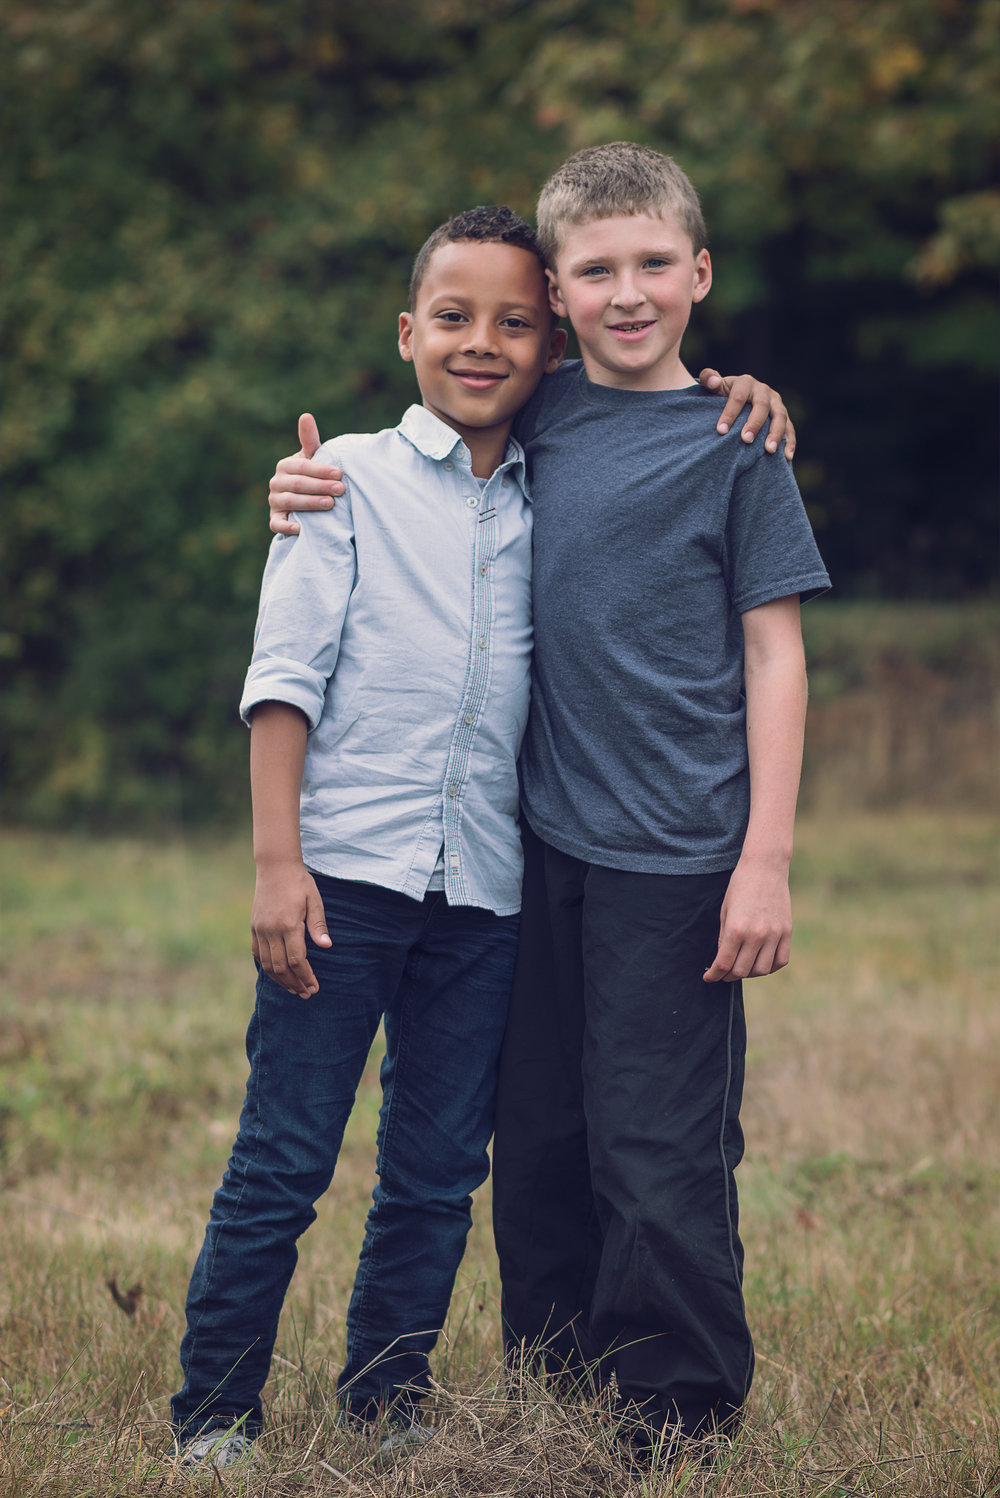 My Son (right) came to help me with the family sessions and made a friend!